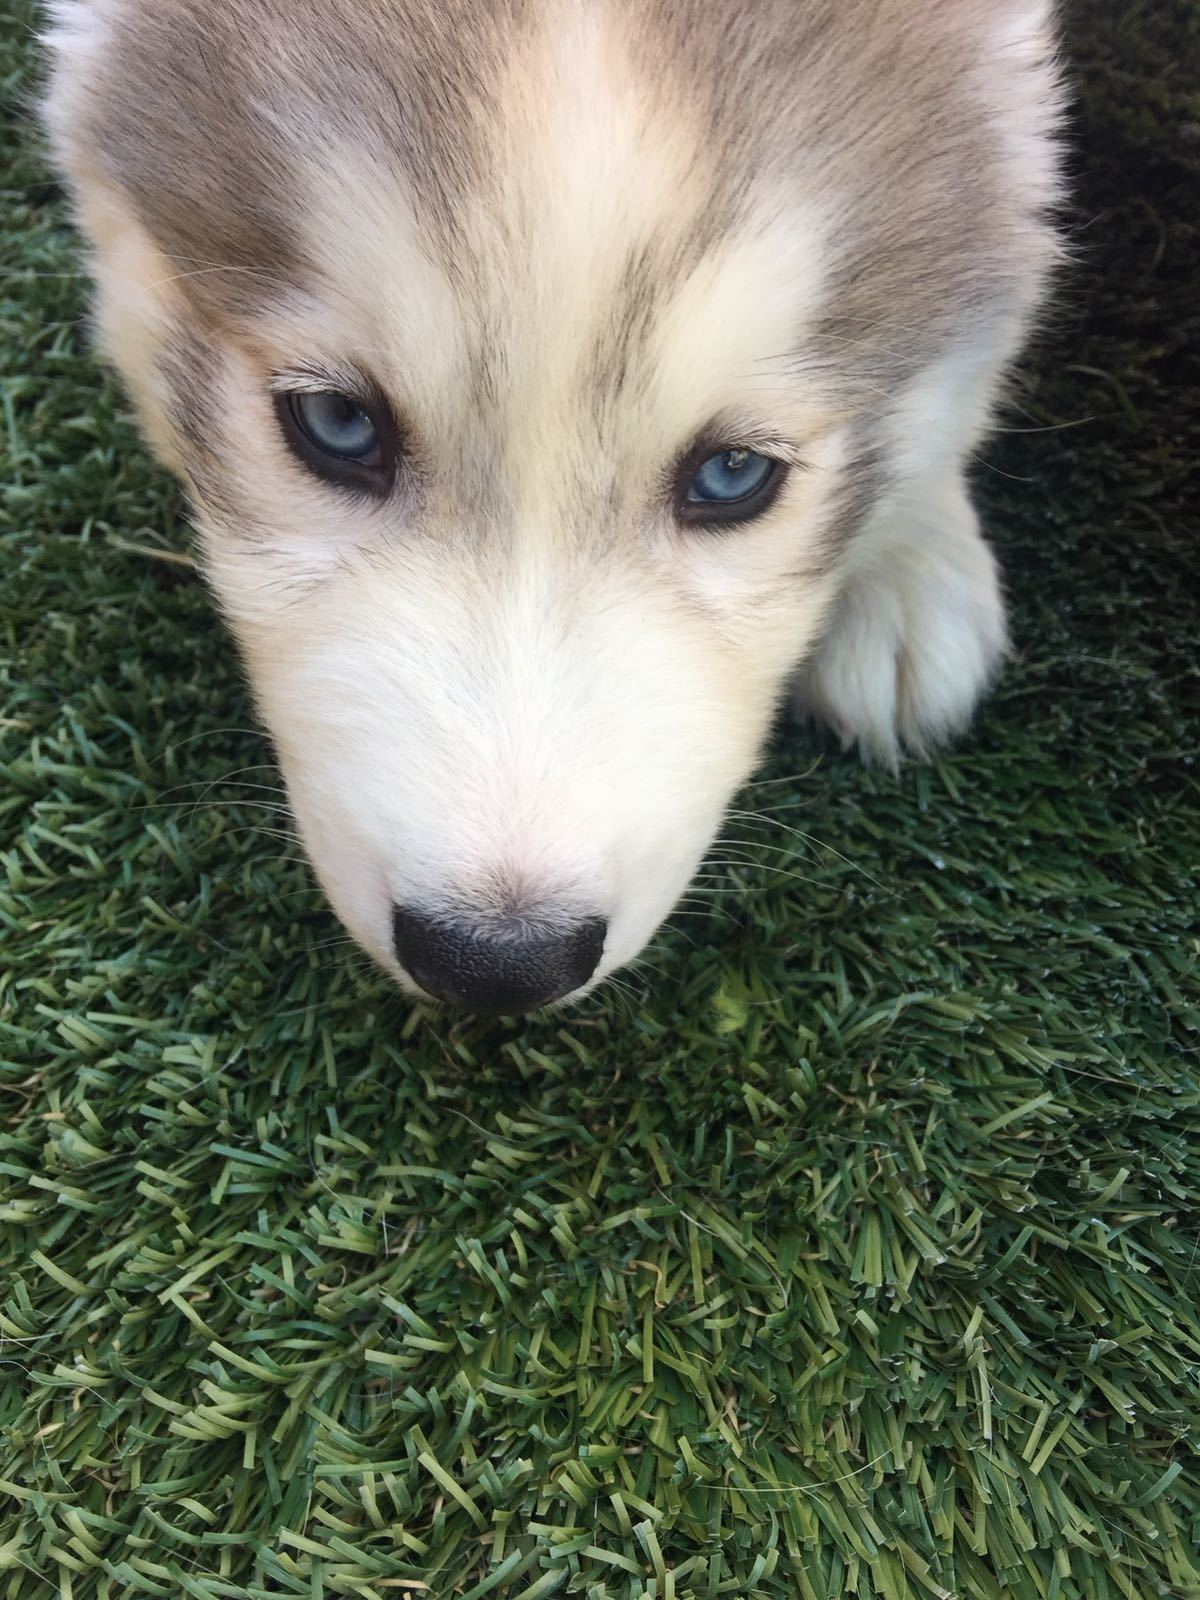 Husky puppy searching for food